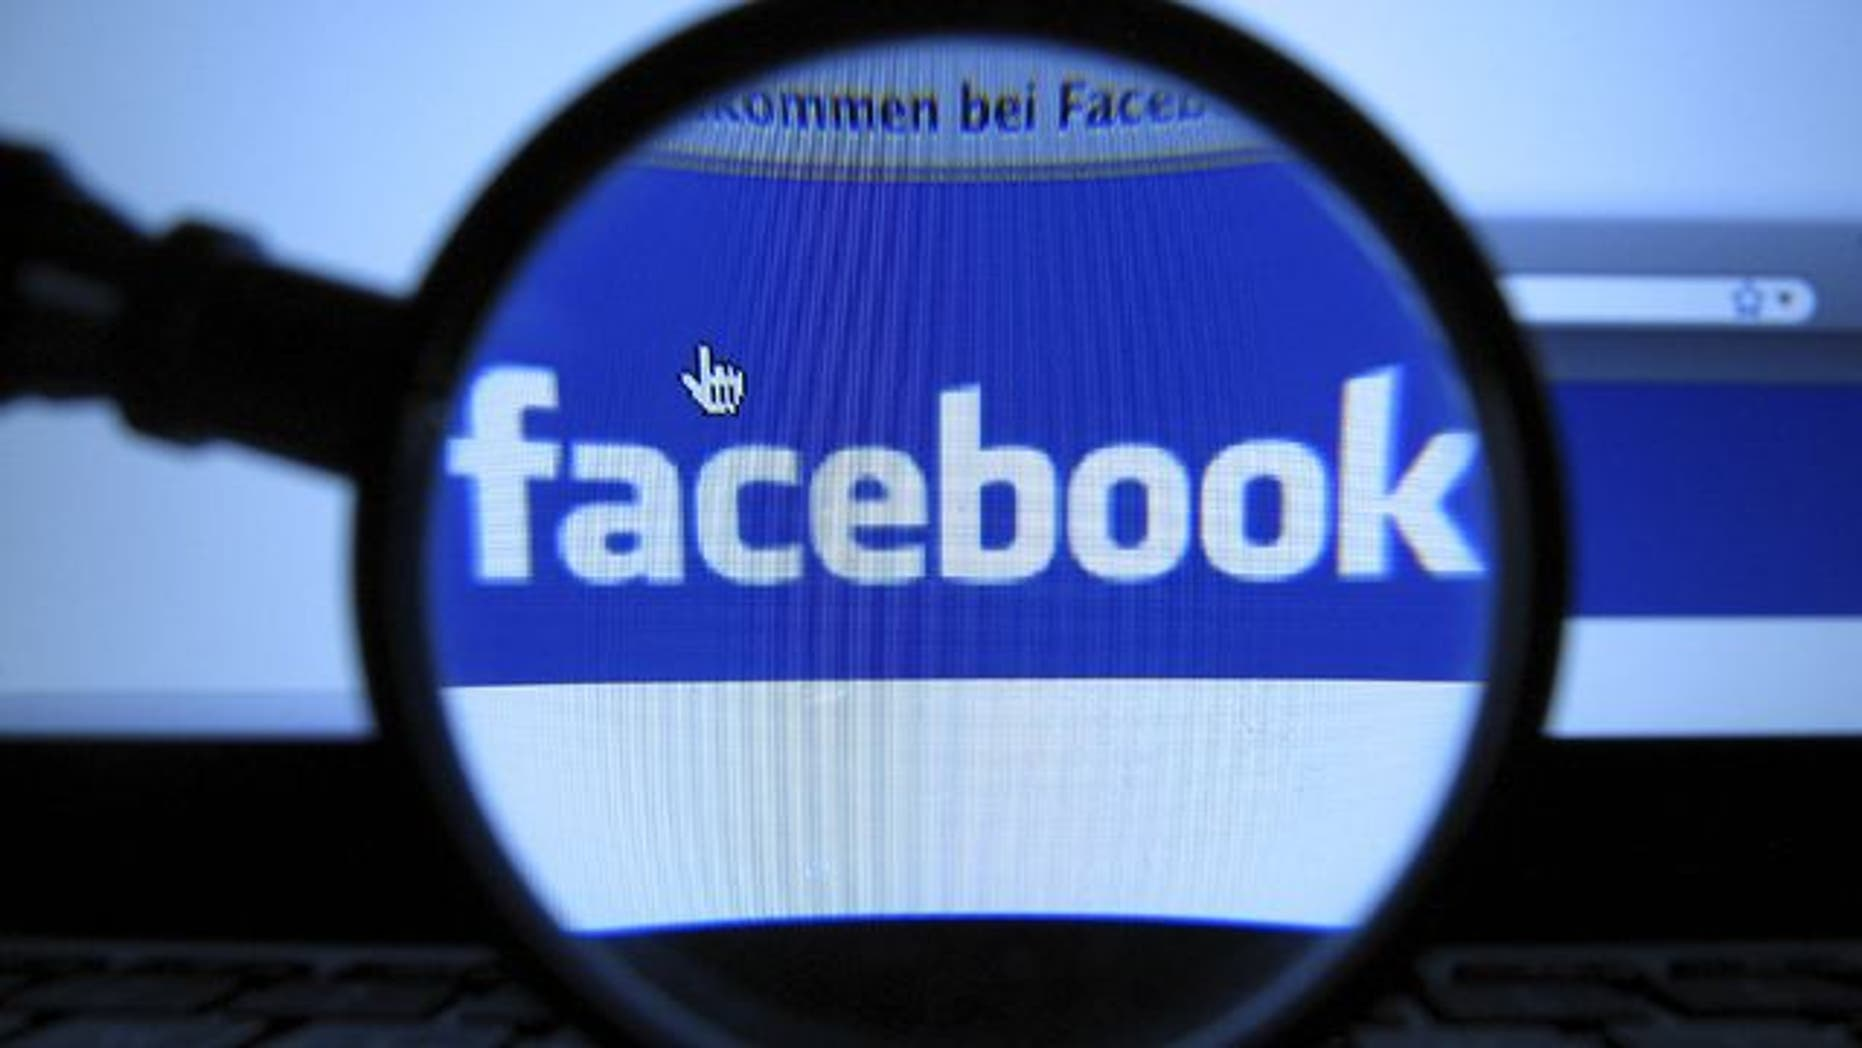 Studies show Facebook may be true, significant public health